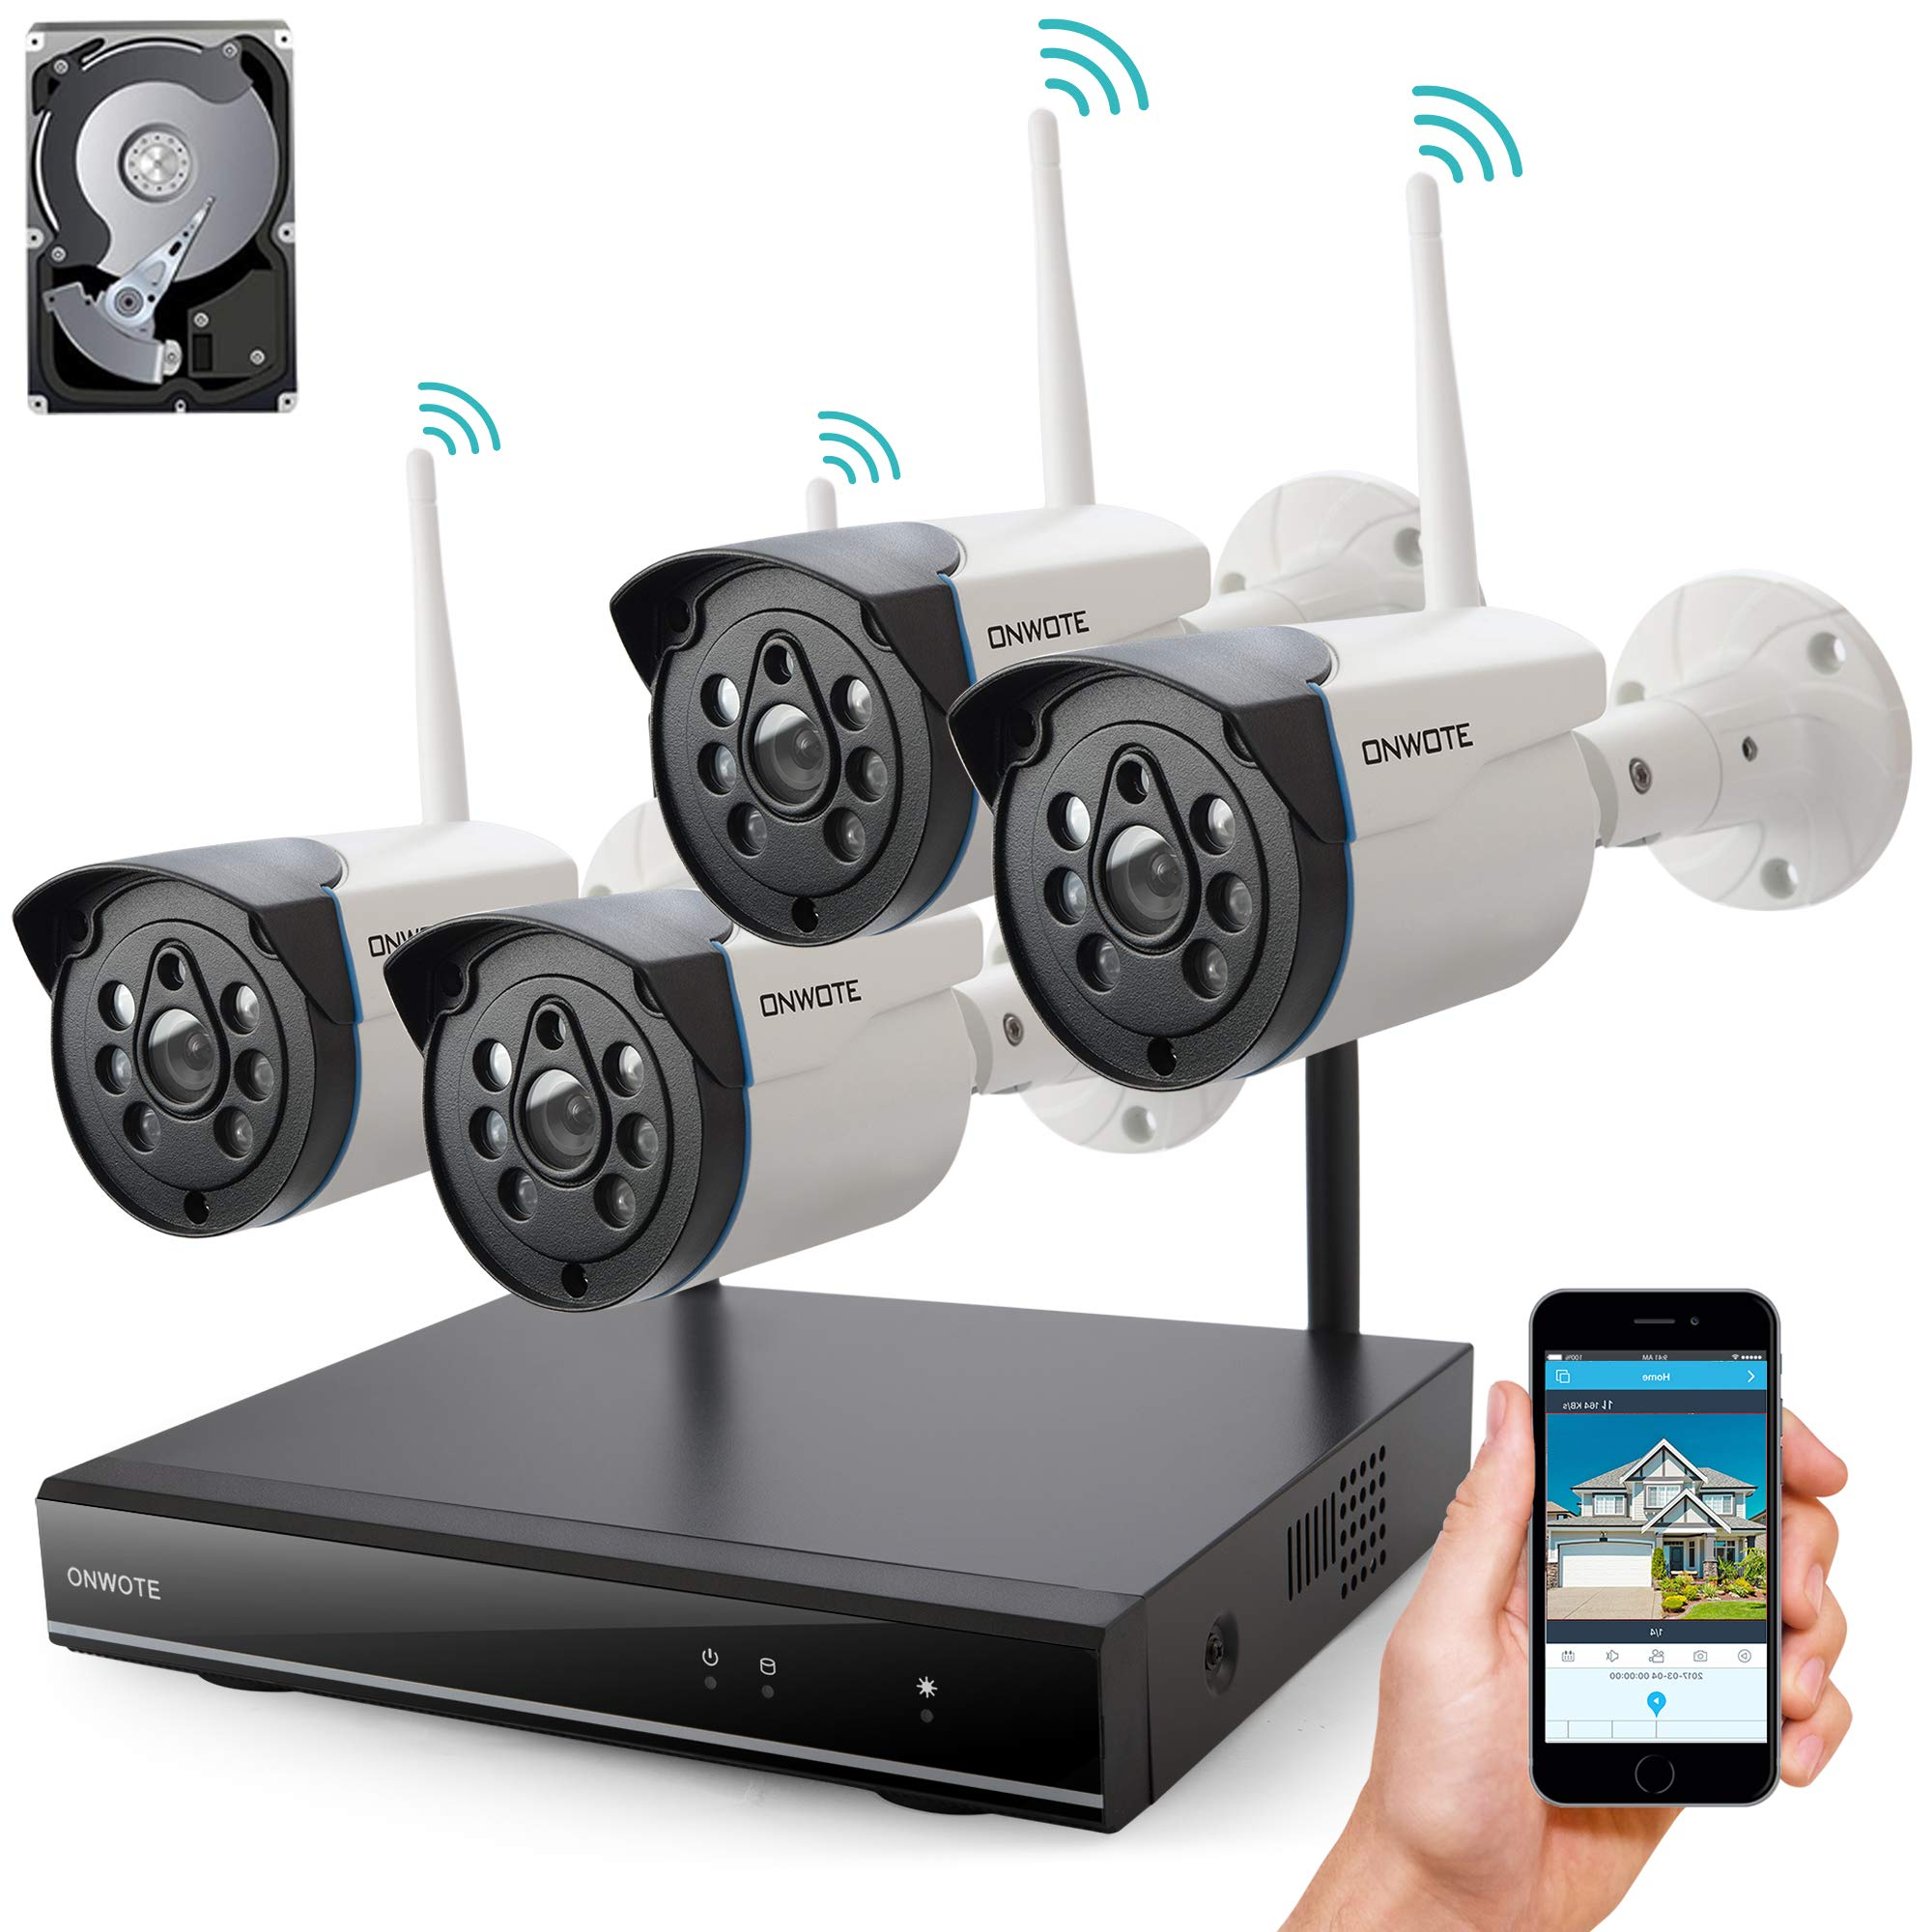 [Expandable] ONWOTE 8CH 1080P NVR 960P HD Outdoor Wireless Home Security Camera System 1TB Hard Drive, 80ft Night Vision, IP66 Weatherproof, Remote Home Monitoring System, Add 4 More Cameras by ONWOTE